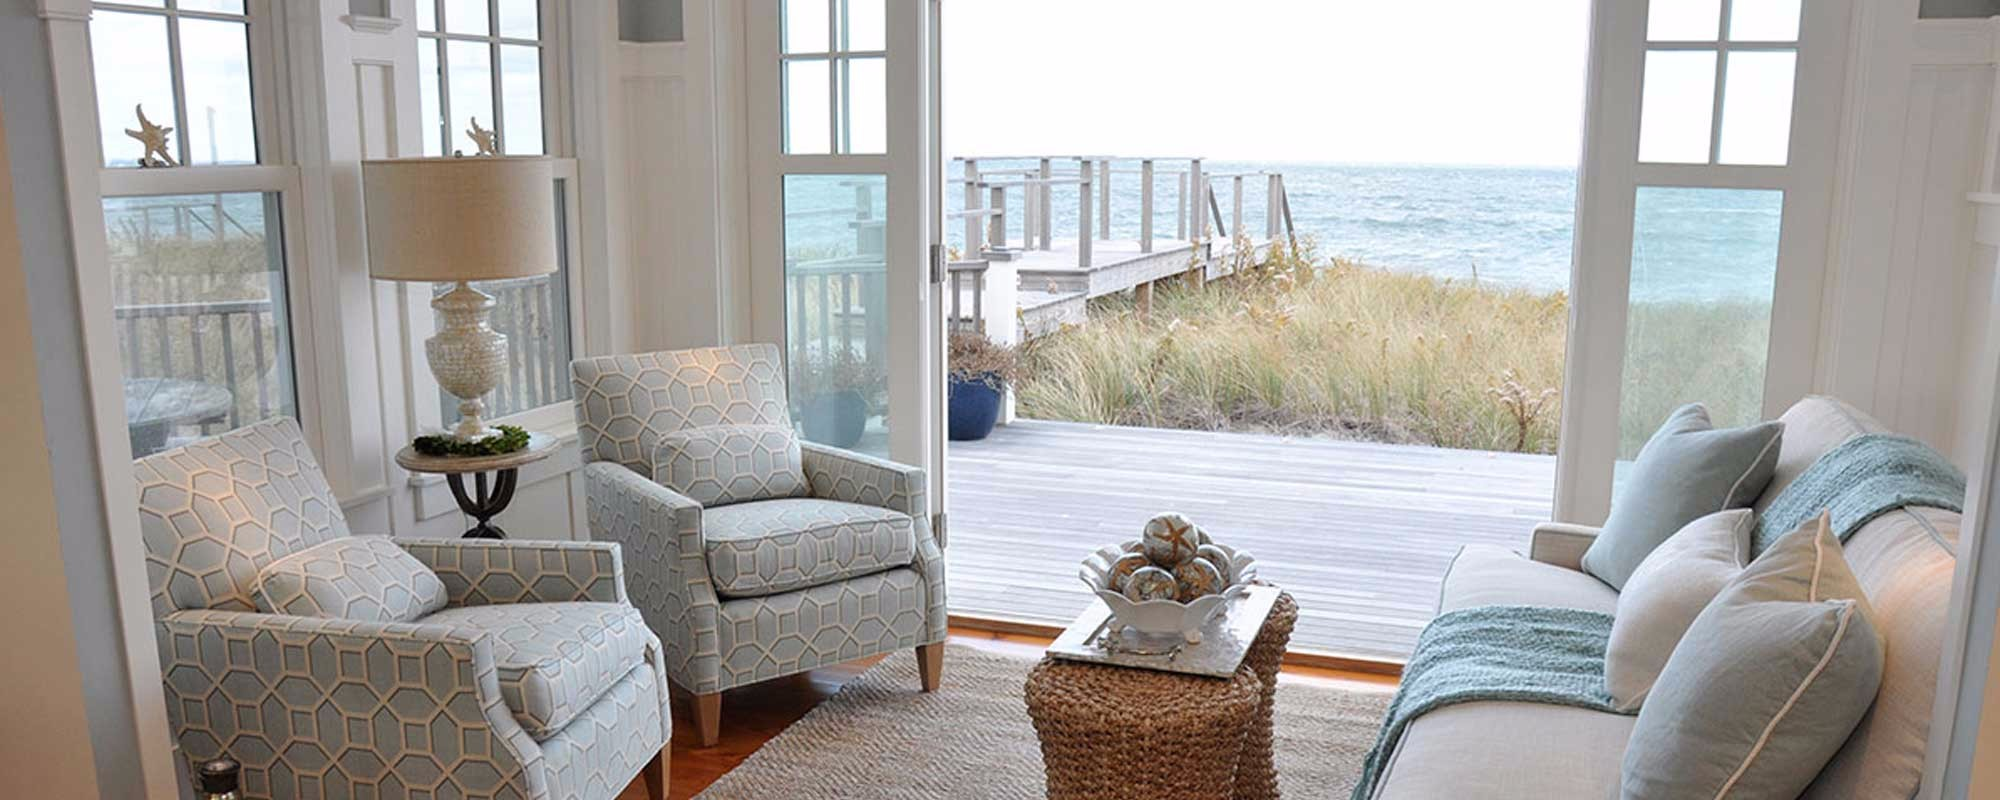 Interior design cape cod ma casabella interiors for Home interior images